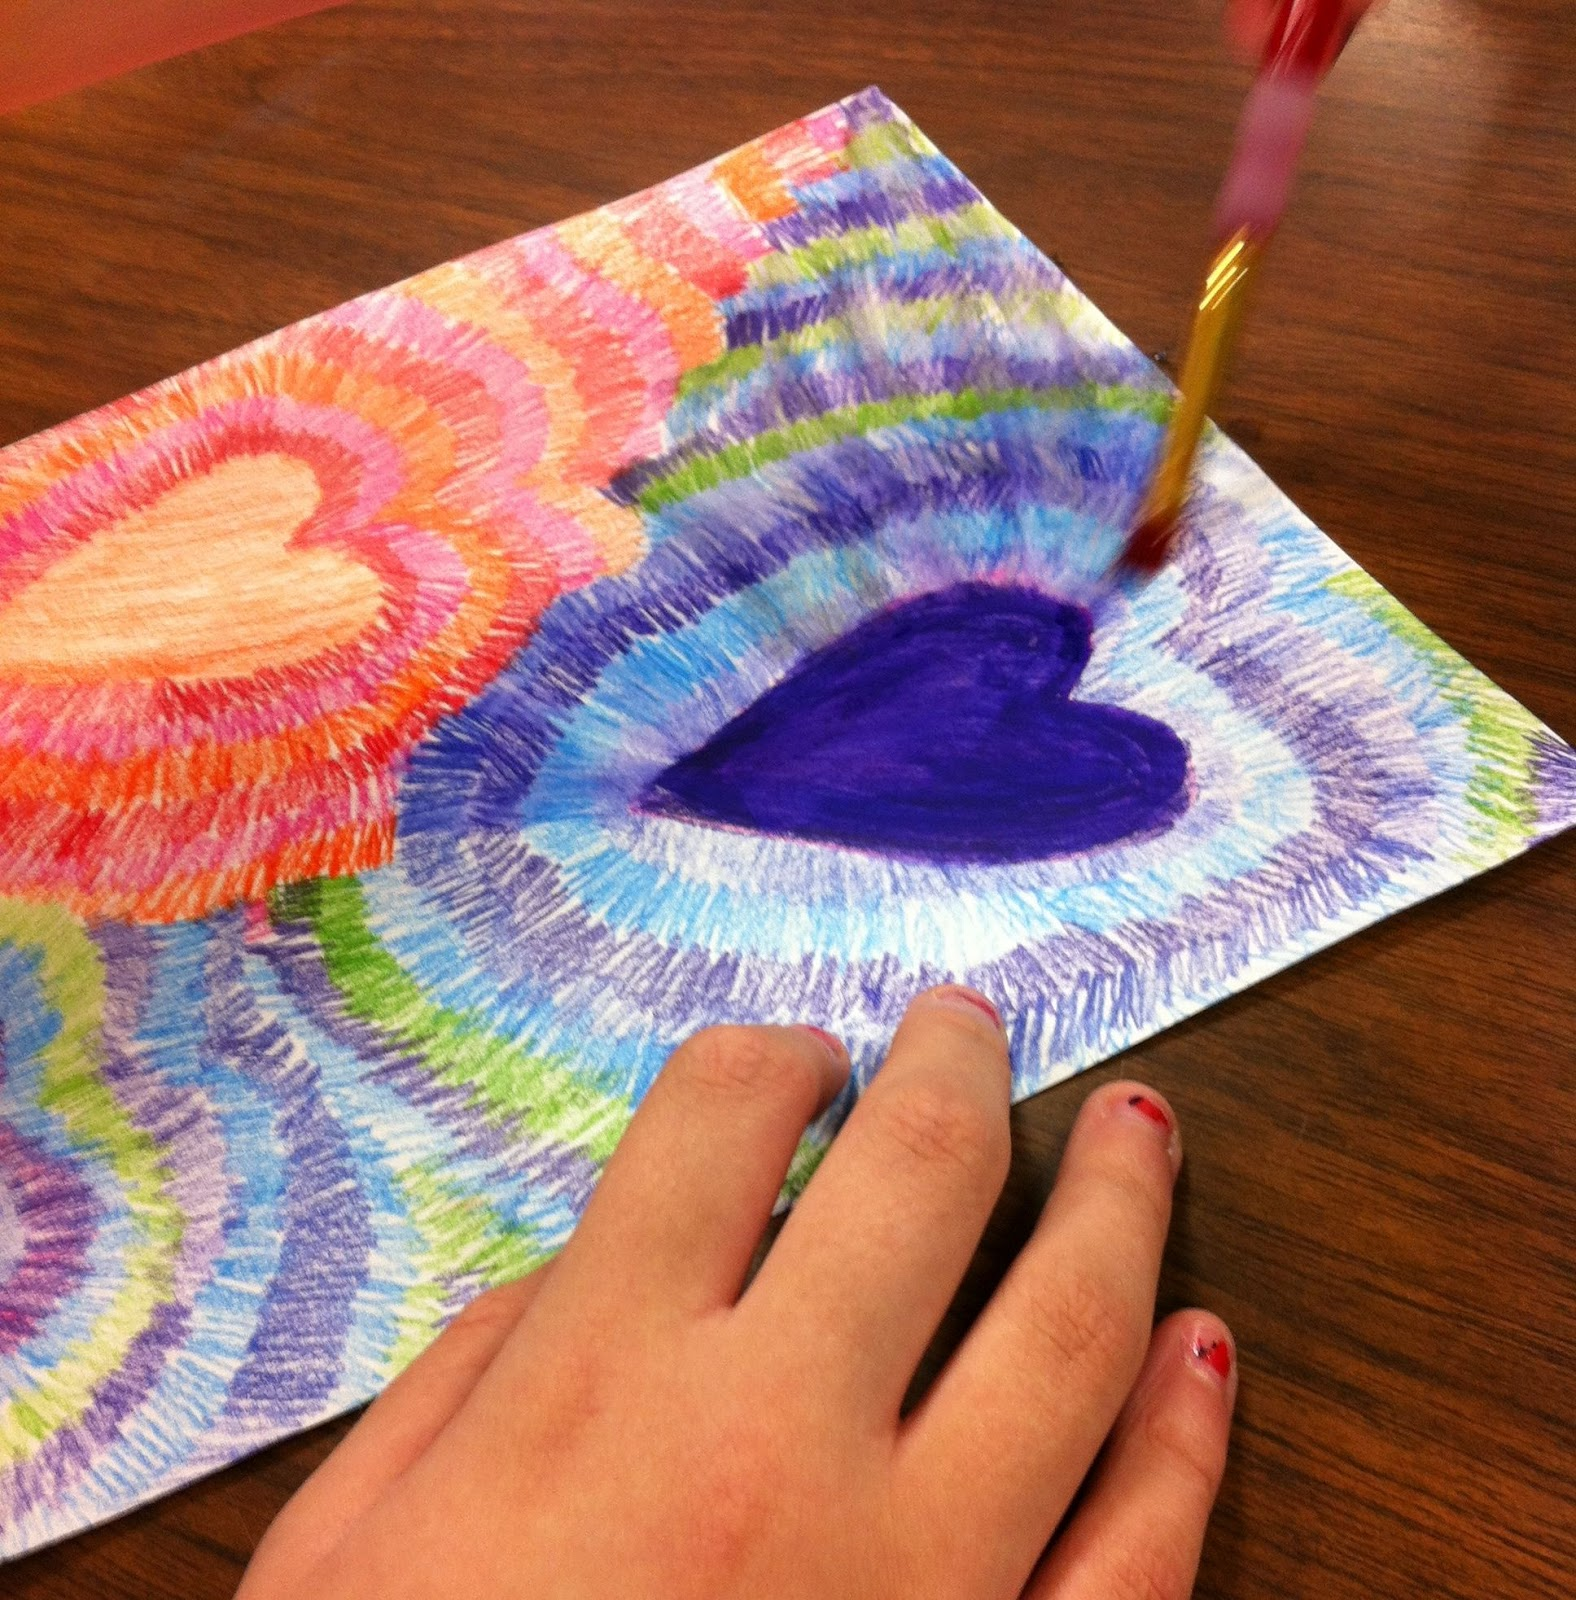 Free Printables to support DIY projects |Heart Art Projects